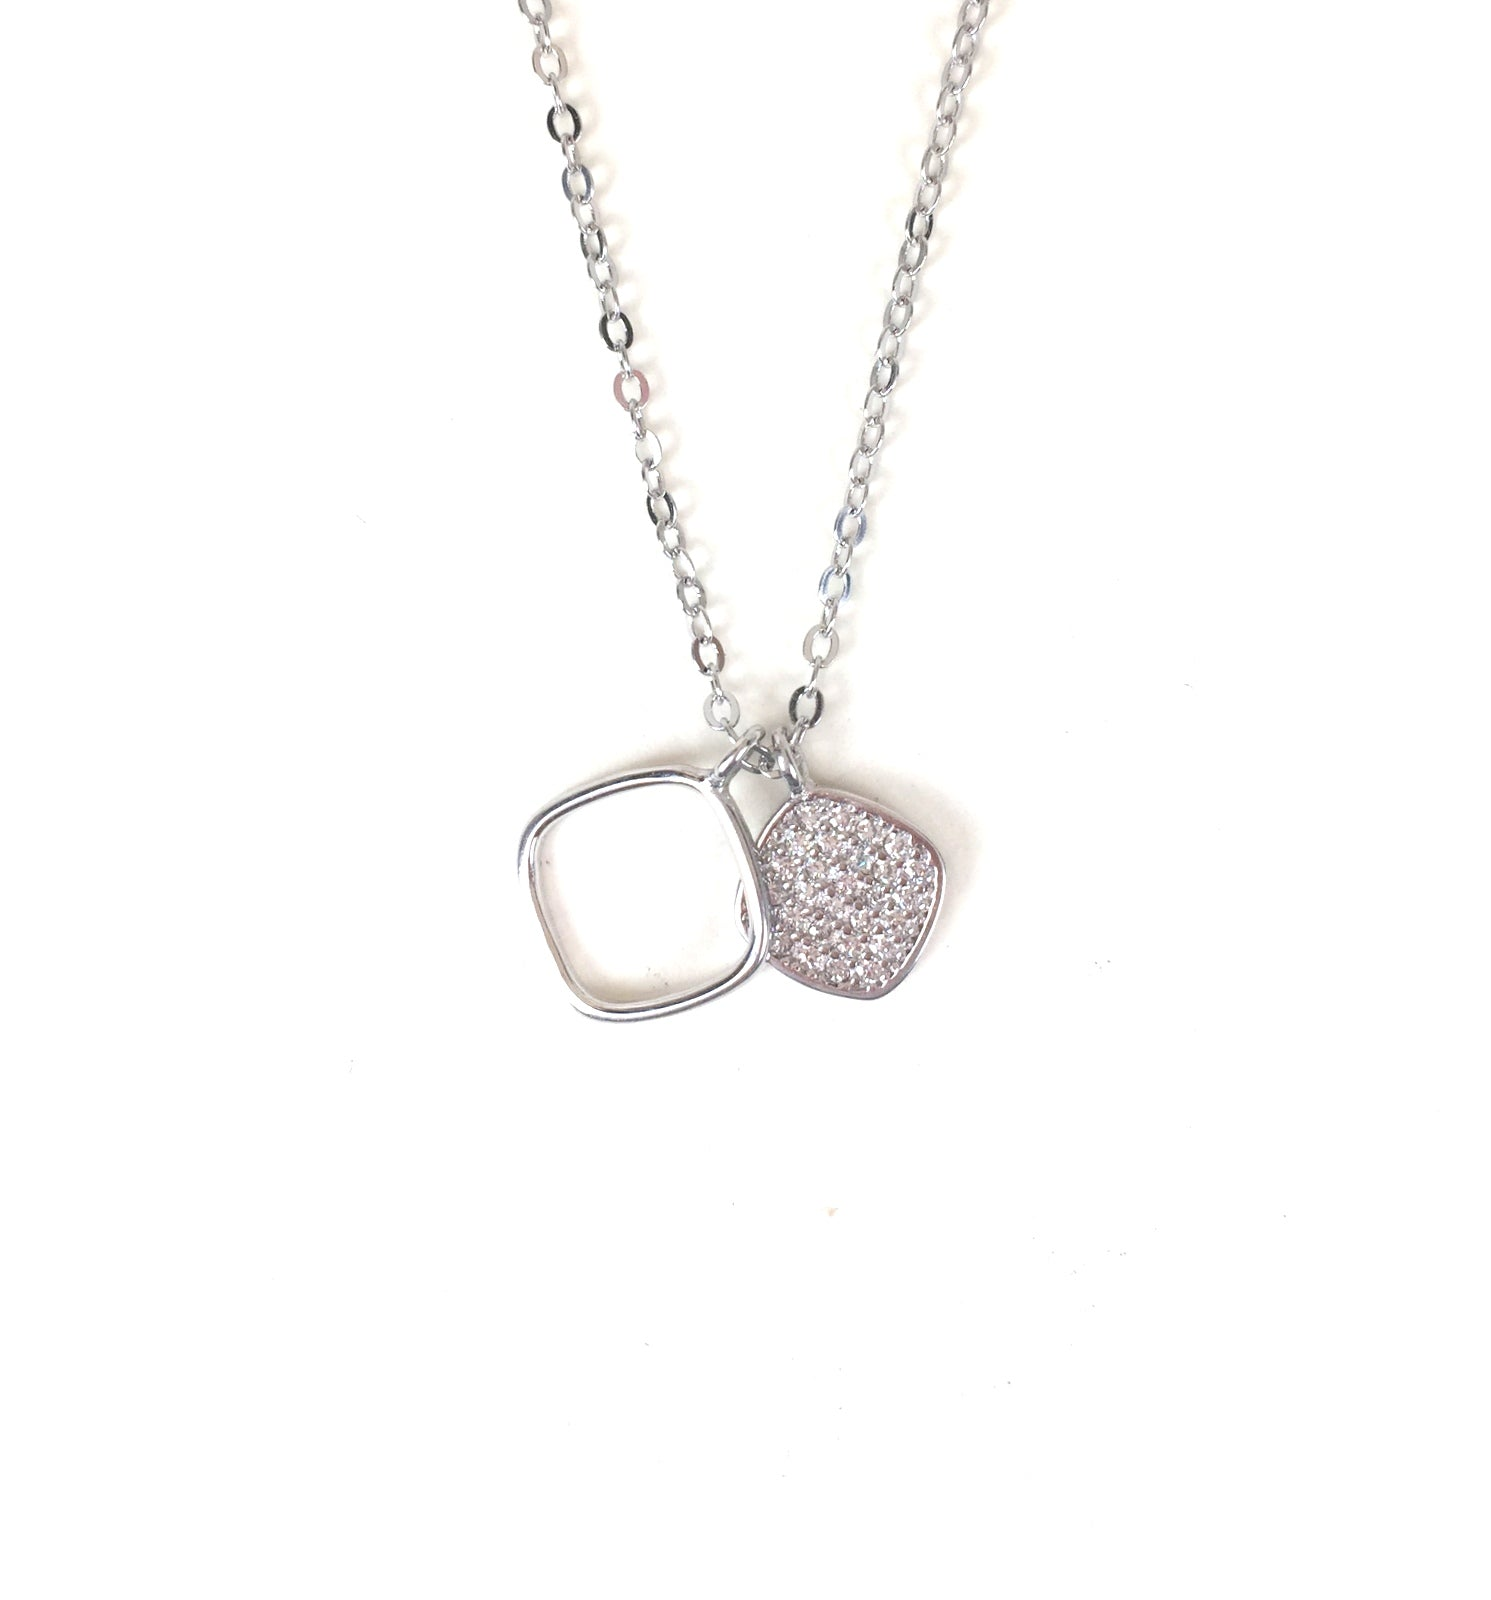 TWO SQUARE PAVE CZ STERLING SILVER NECKLACE